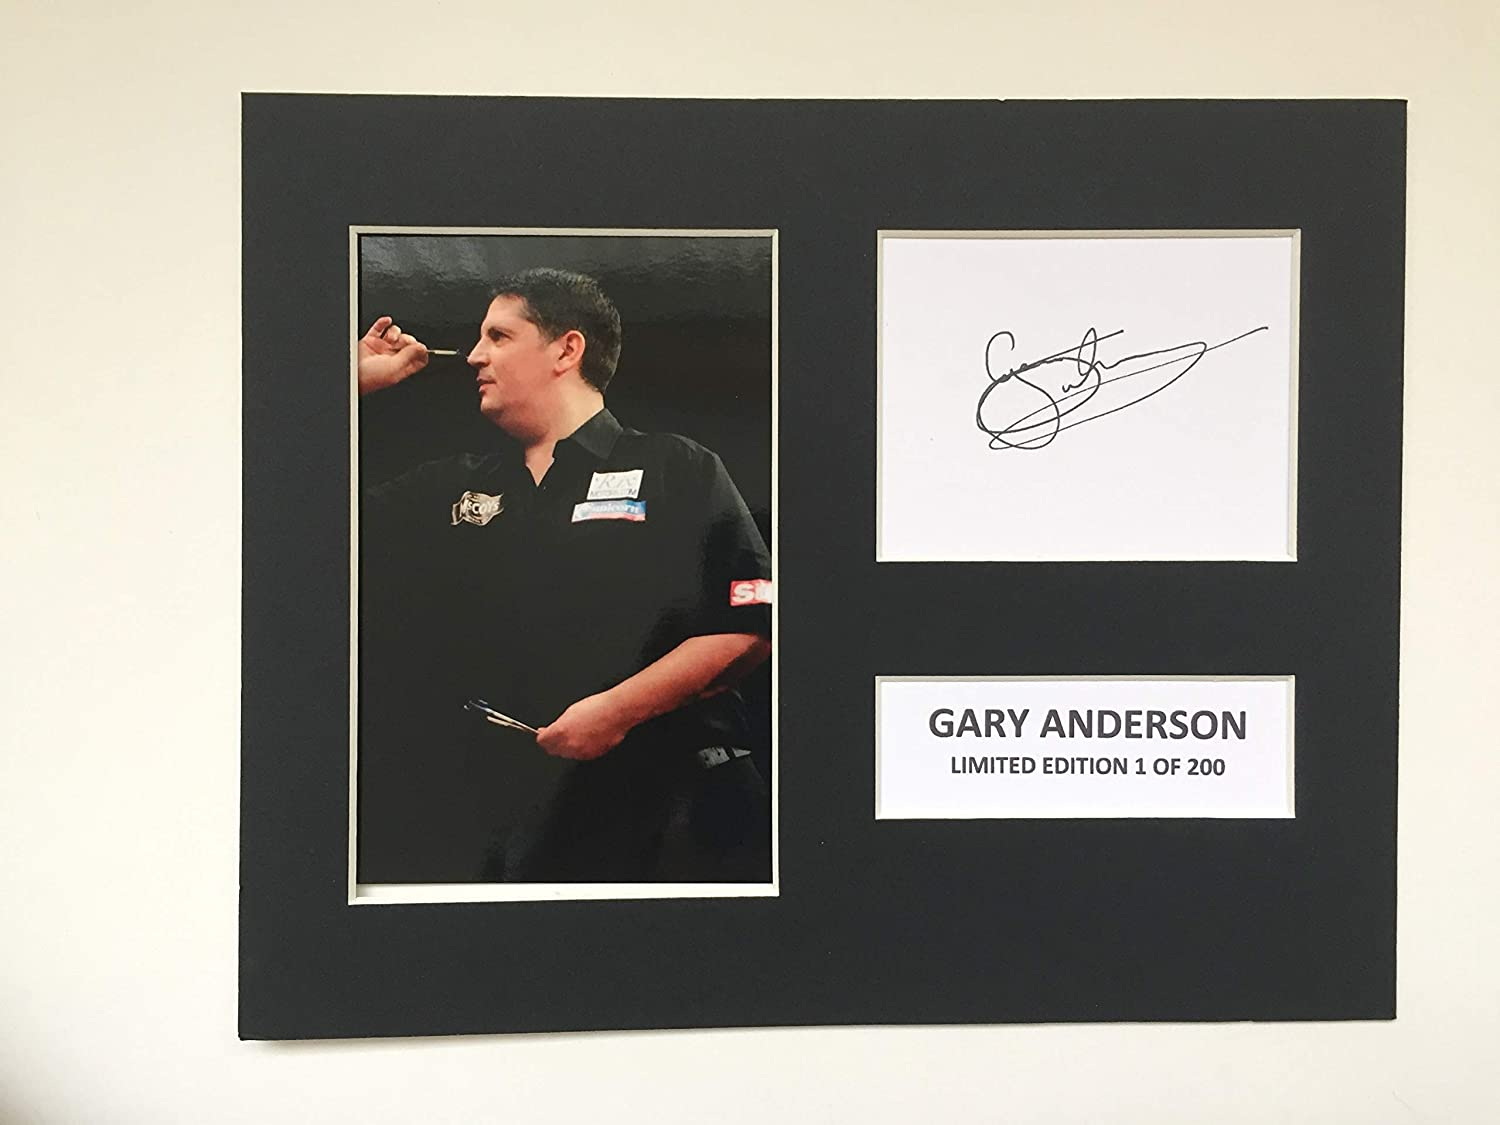 LIMITED EDITION GARY ANDERSON SIGNED DISPLAY PRINTED AUTOGRAPH BOXING AUTOGRAPH AUTOGRAF AUTOGRAM SIGNIERT SIGNATURE MOUNT FRAME